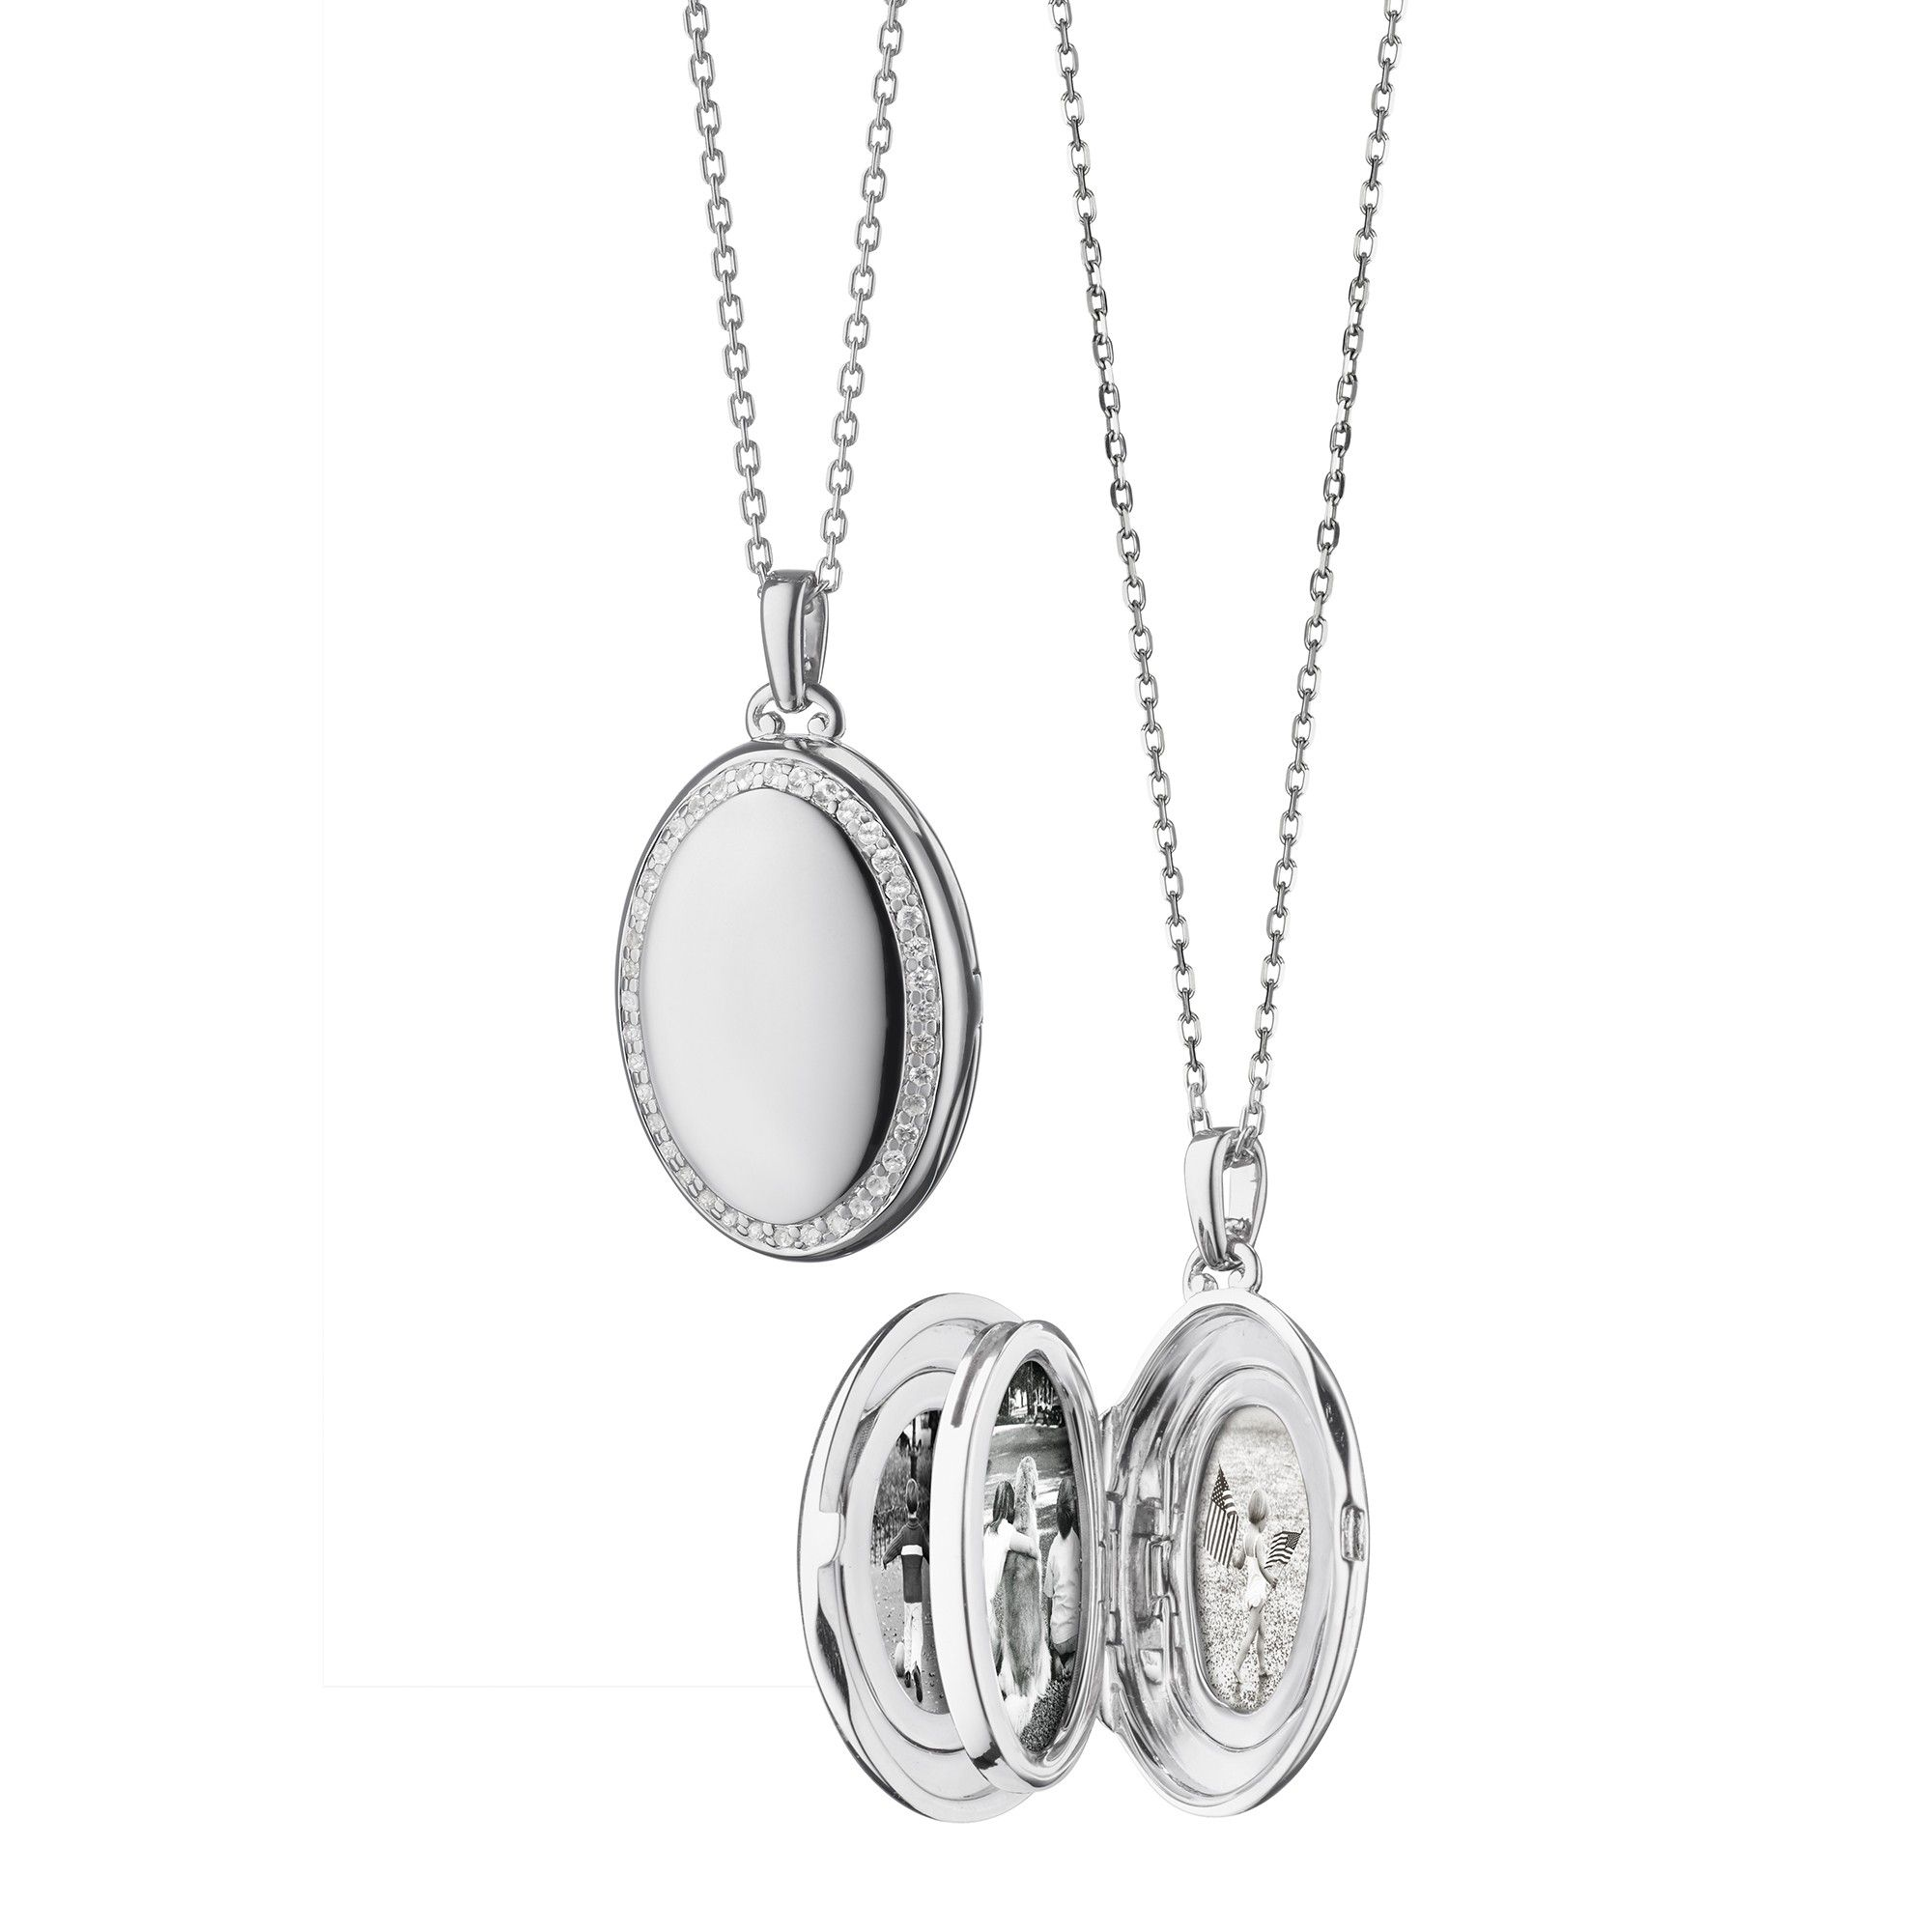 Monica Rich Kosann Sterling Silver Starburst Locket Necklace with White Sapphires G7P4FRqRB